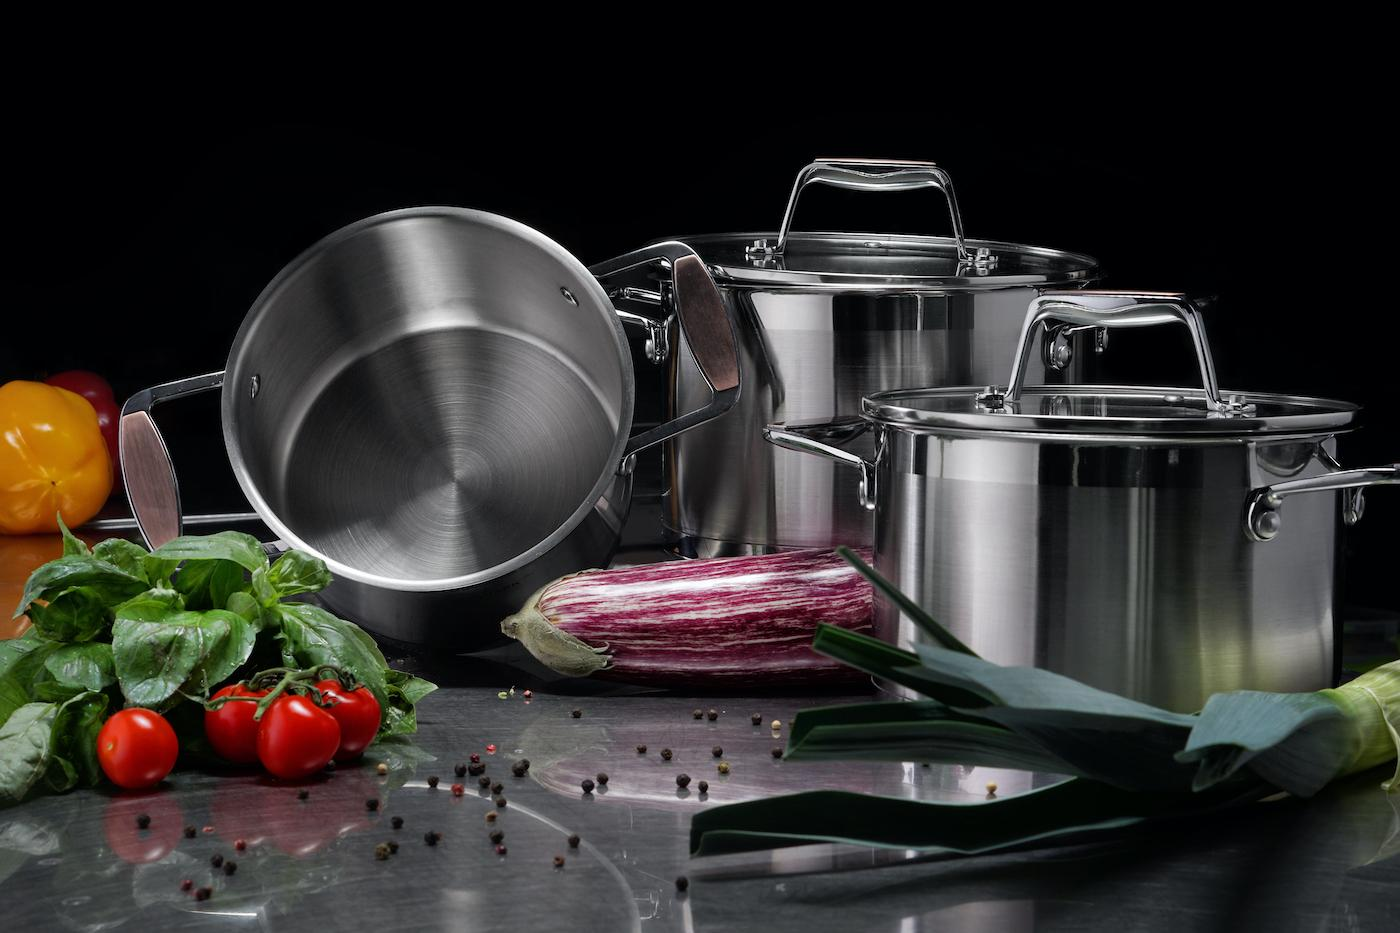 stainless-steel-pots-pans-1579645366720.jpg